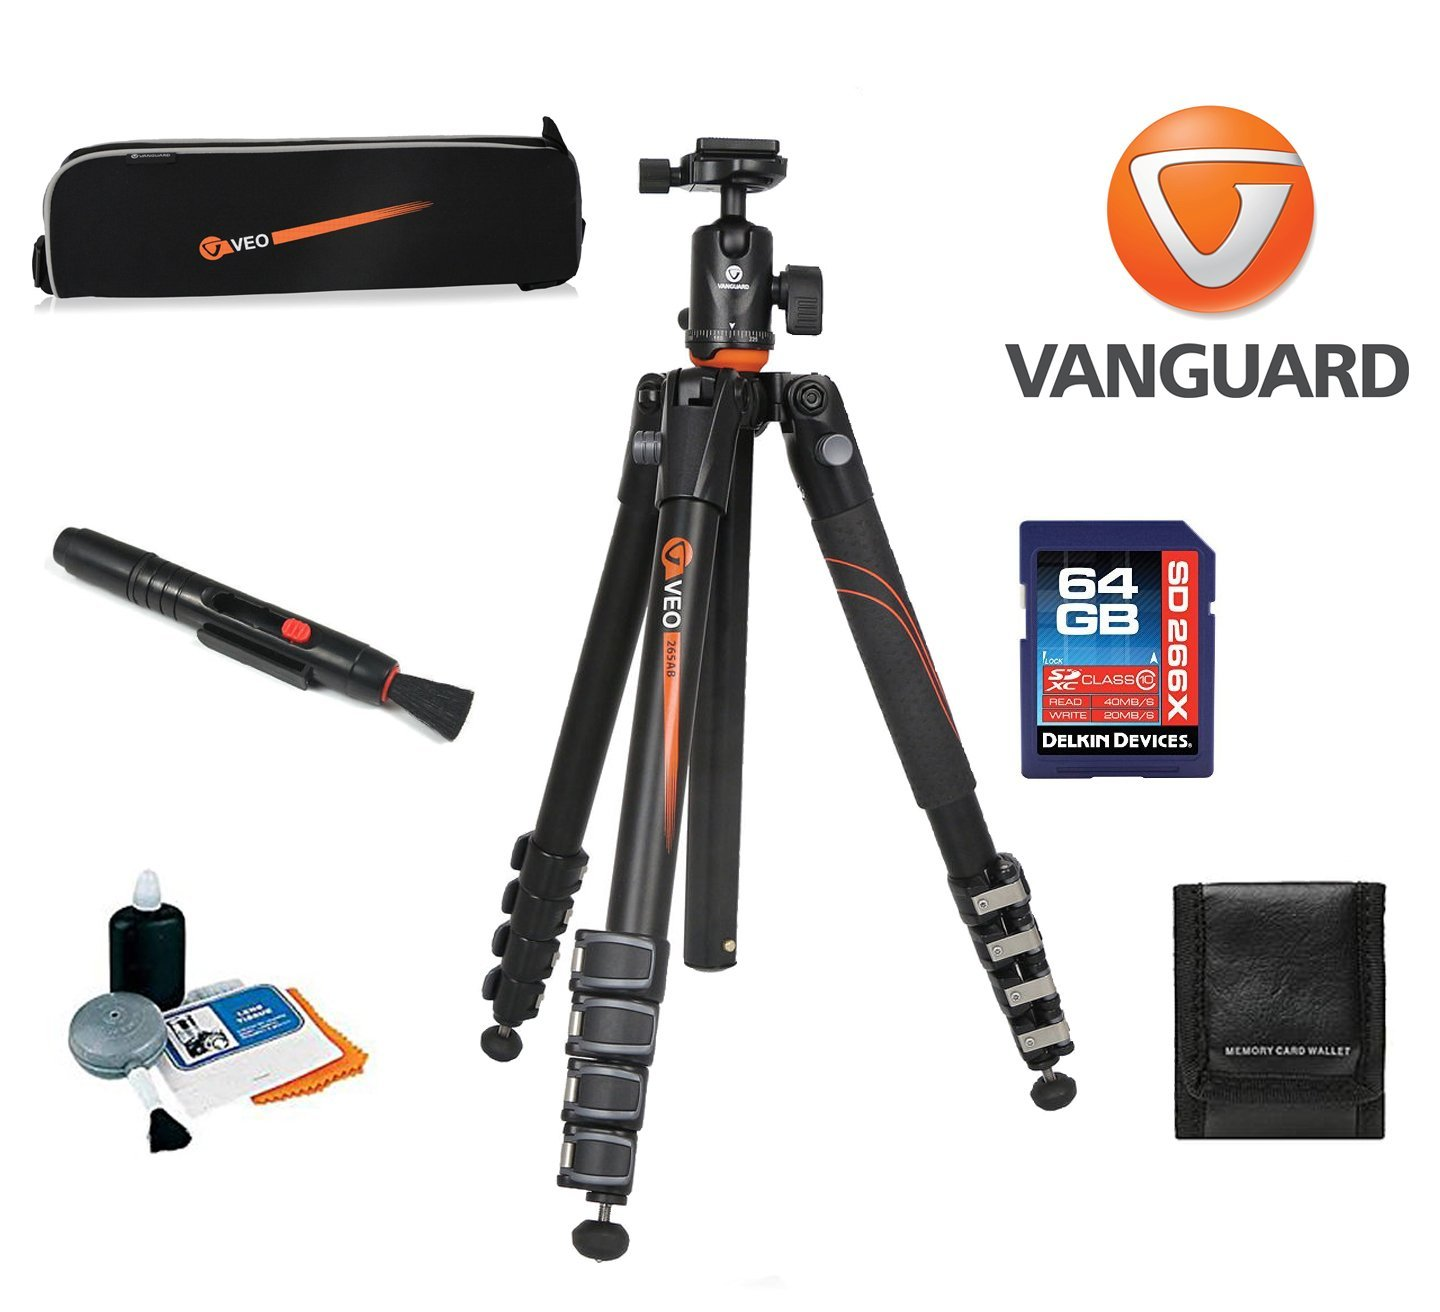 Vanguard VEO 265AB Aluminum Tripod with TBH-50 Ball Head W/ Vanguard Case, 64GB SDXC Card, Cleaning Kit, Lens Pen, Memory Card Wallet